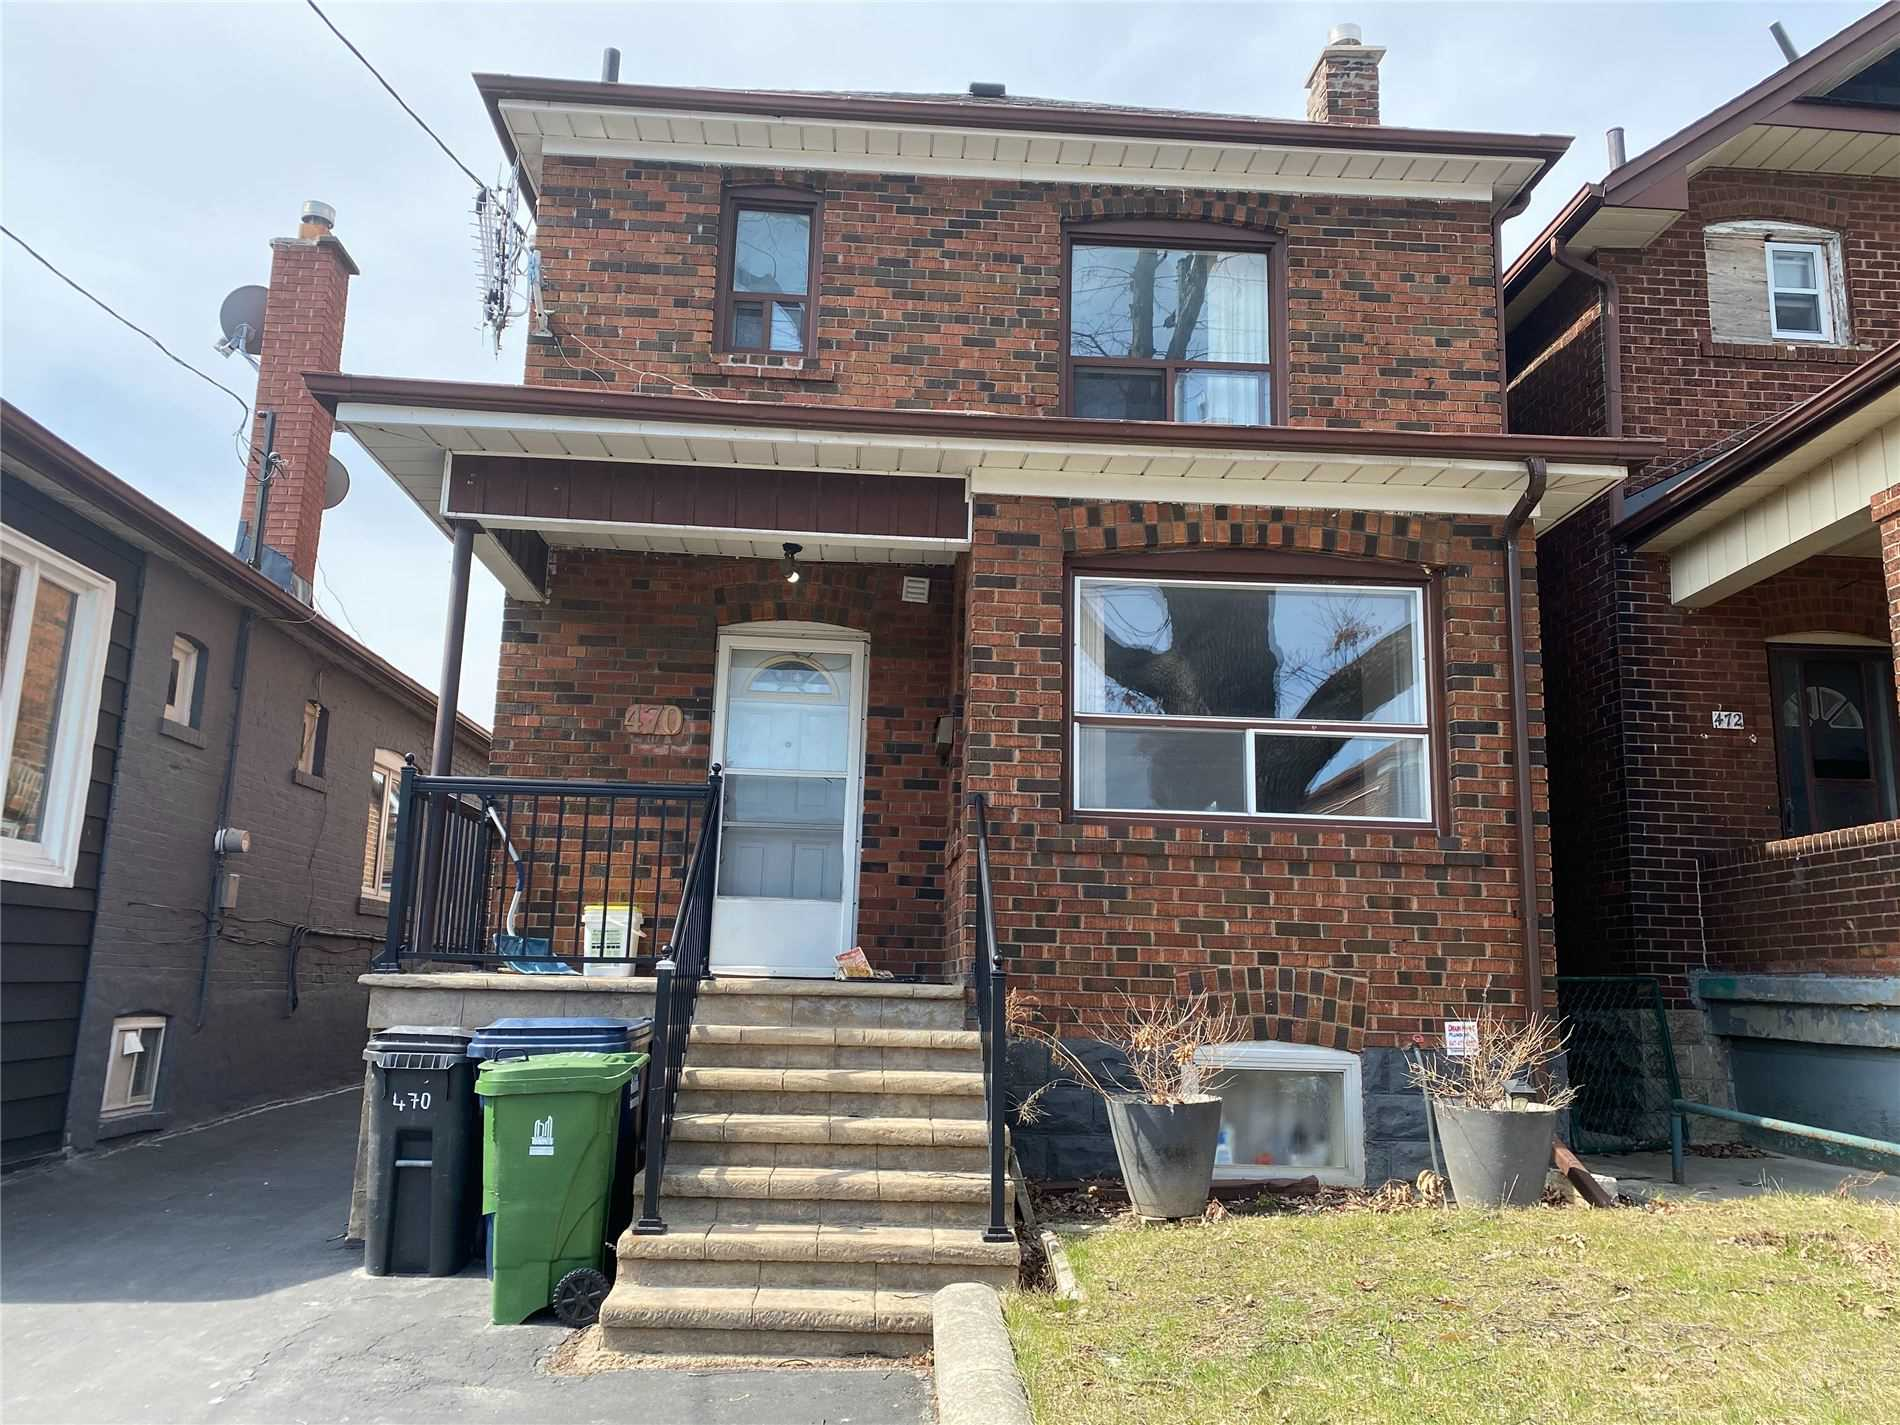 Detached house For Lease In Toronto - 470 Oakwood Ave, Toronto, Ontario, Canada M6E2W6 , 2 Bedrooms Bedrooms, ,1 BathroomBathrooms,Detached,For Lease,Upper,Oakwood